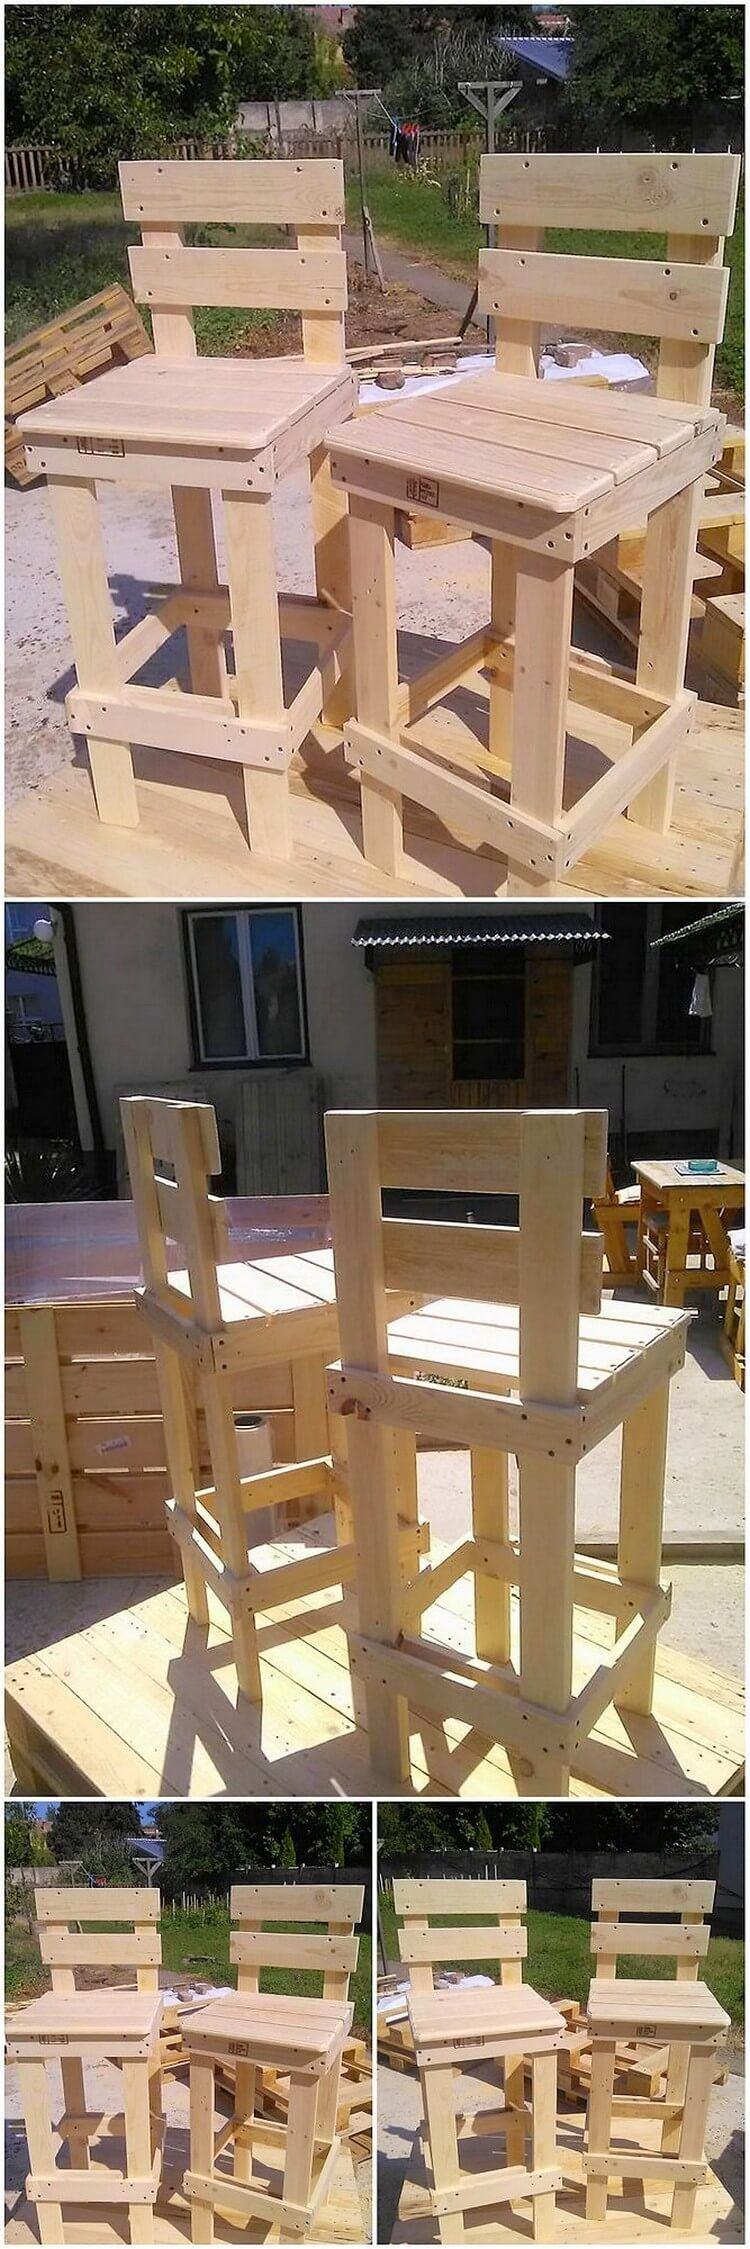 shipping pallet furniture ideas. Creative Home Furnishings With Used Shipping Pallets Pallet Furniture Ideas